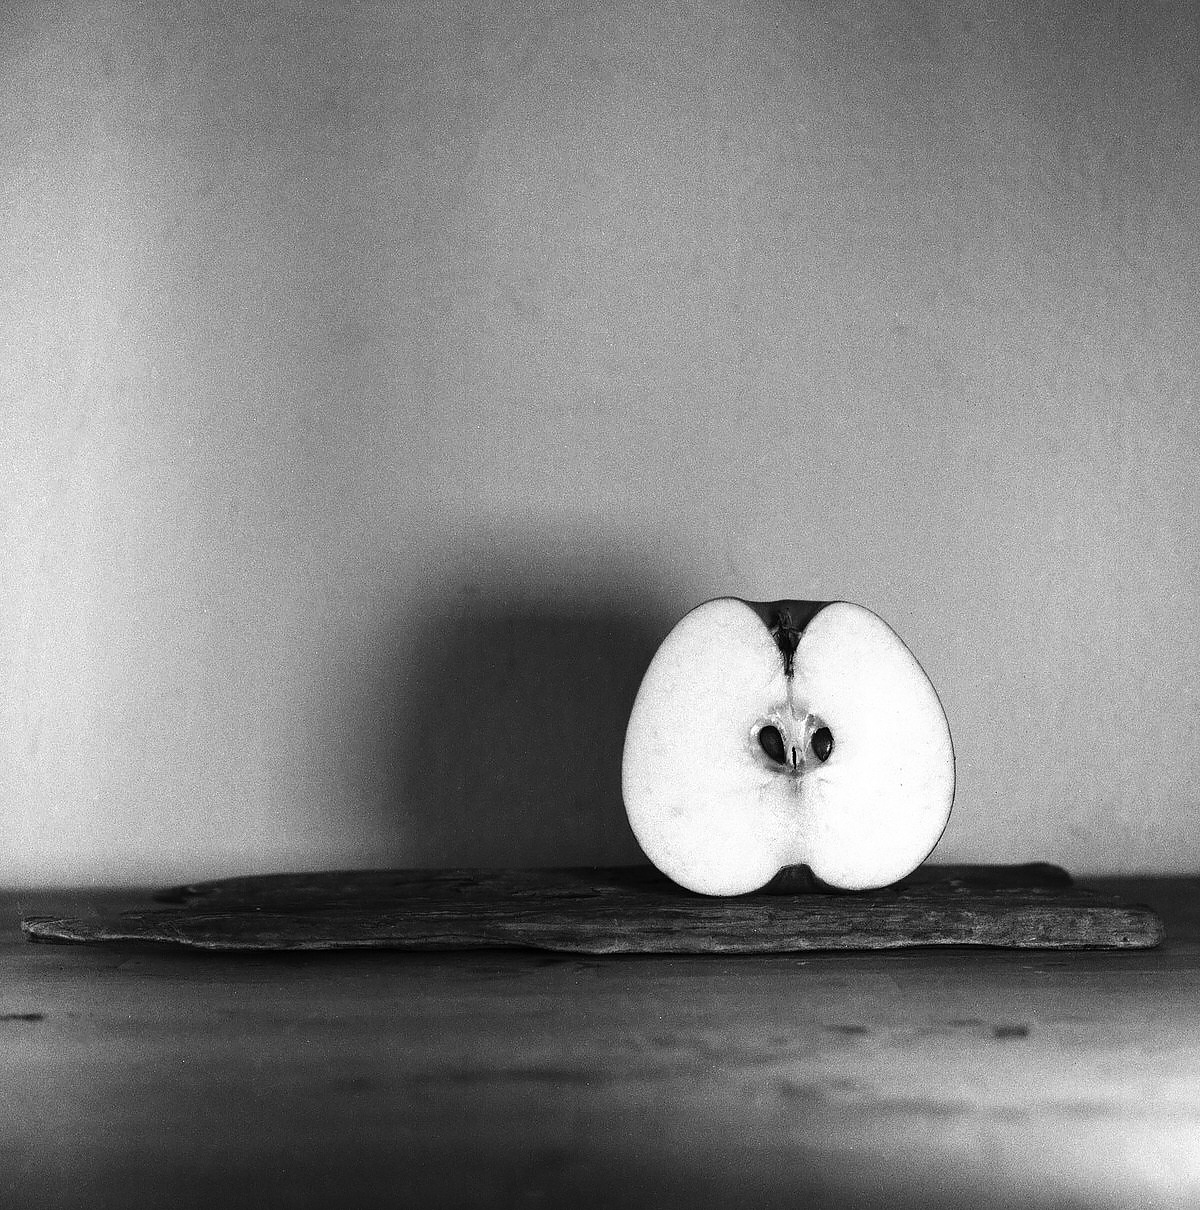 Apple - Still Life Photography | Yashica MAT124 with Fomapan